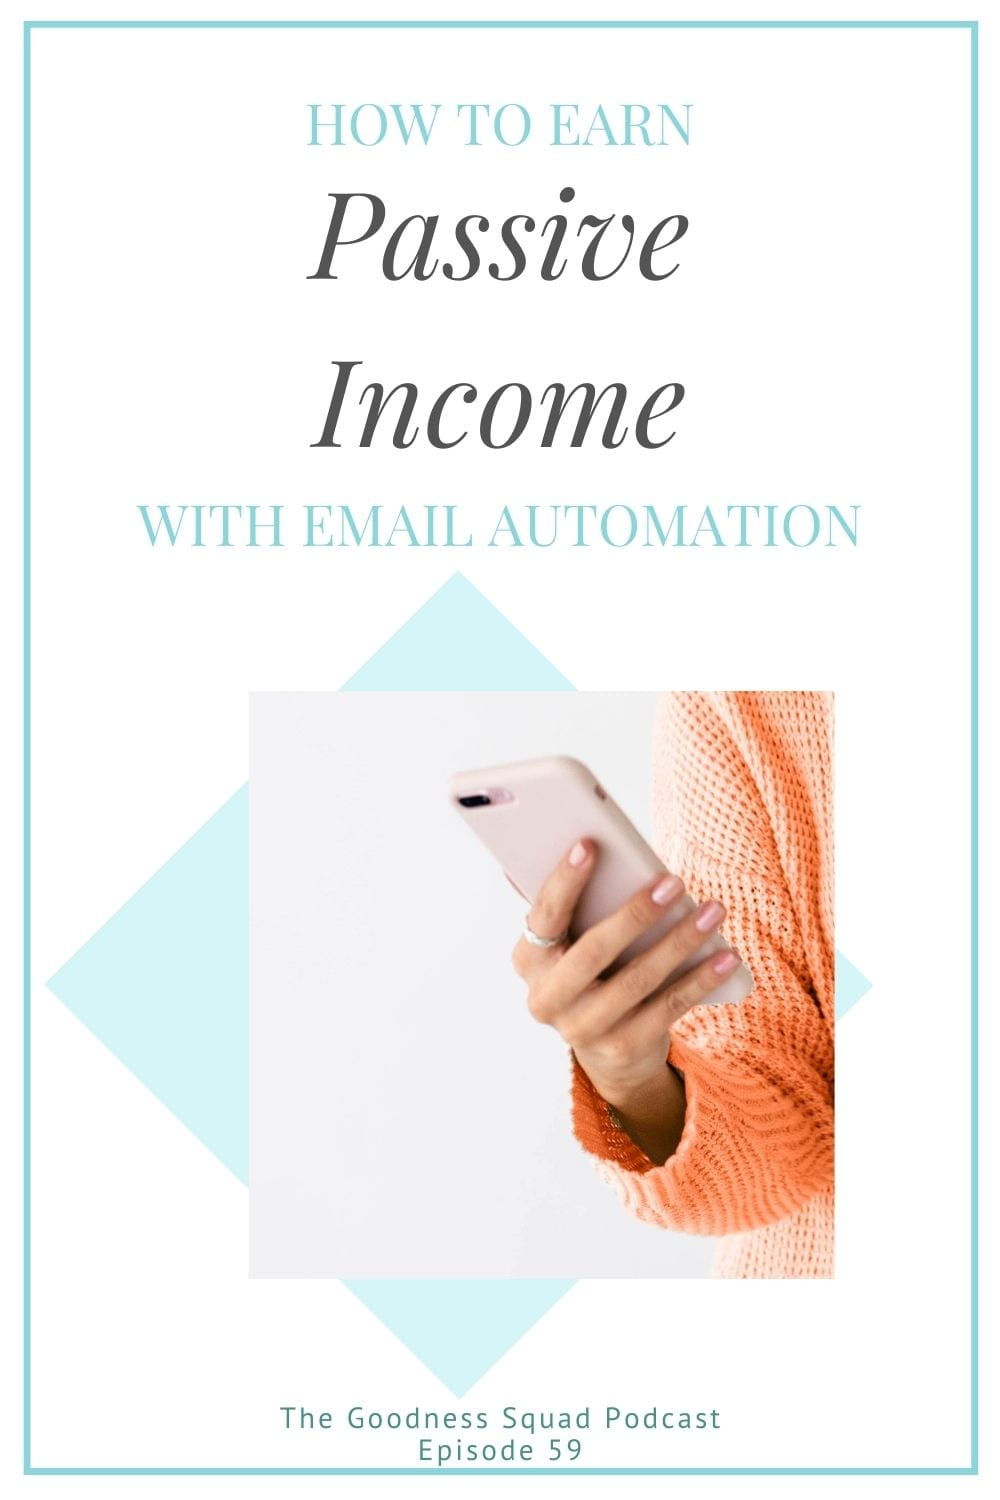 How email automation can help you earn passive income